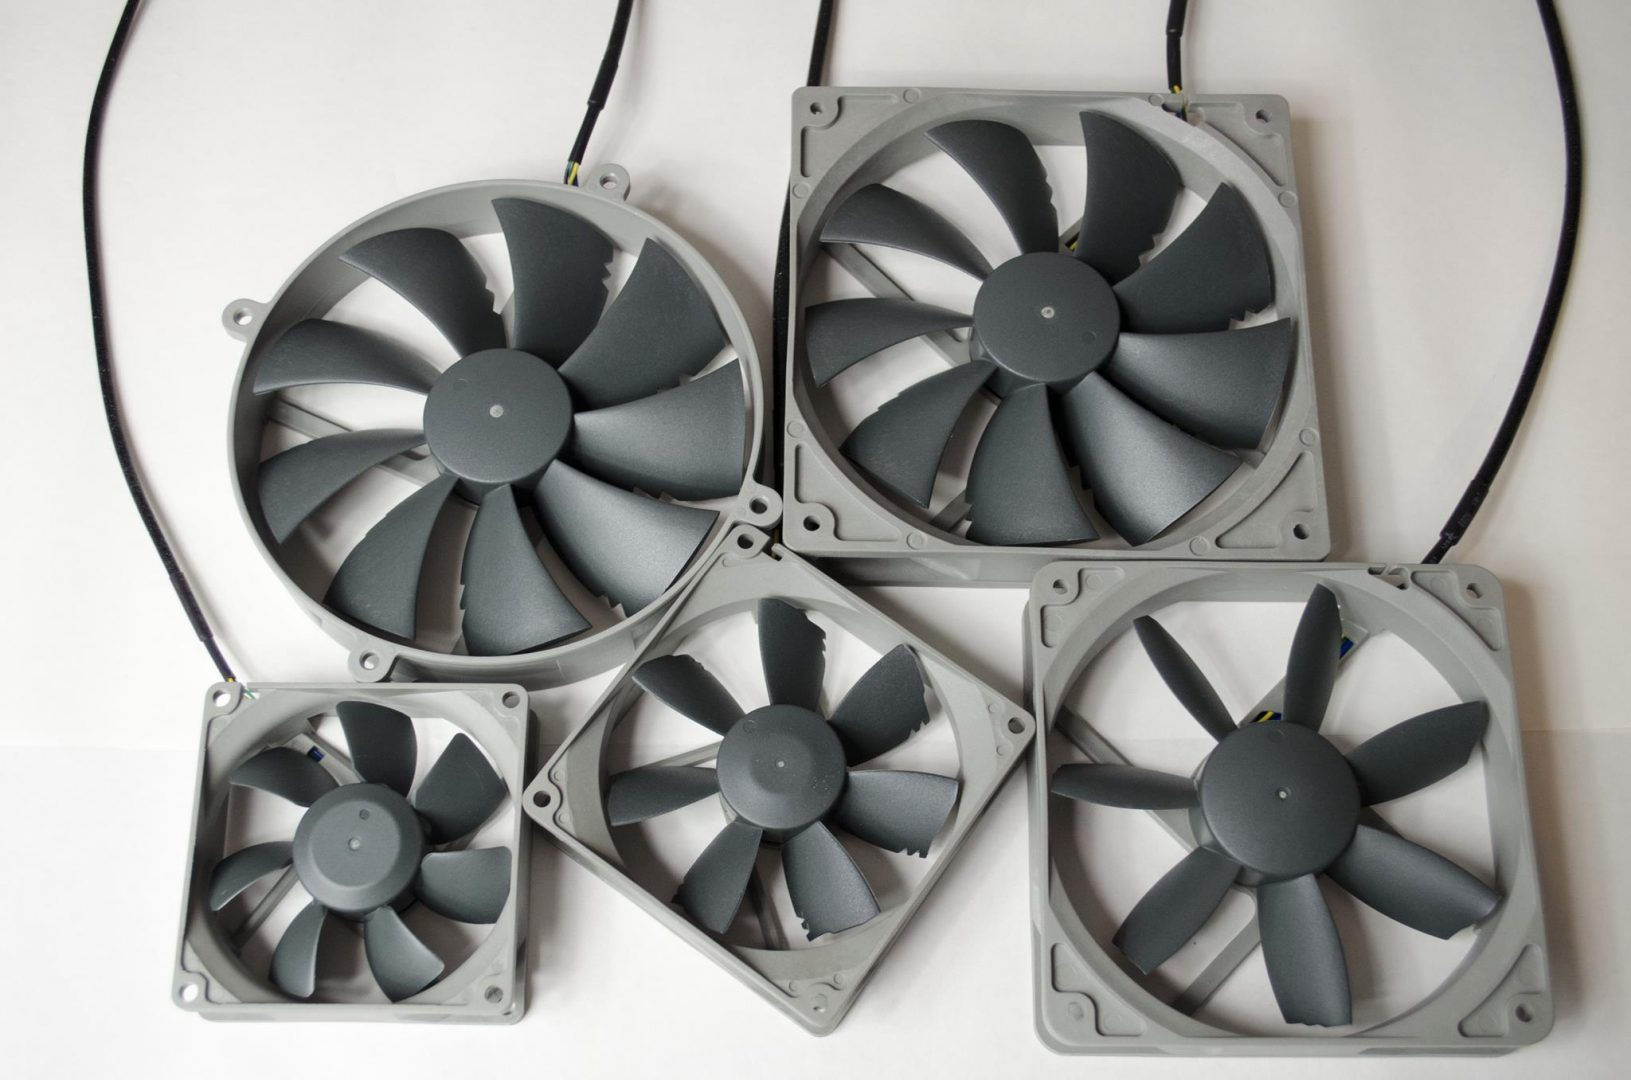 Noctua Redux Fans review_8